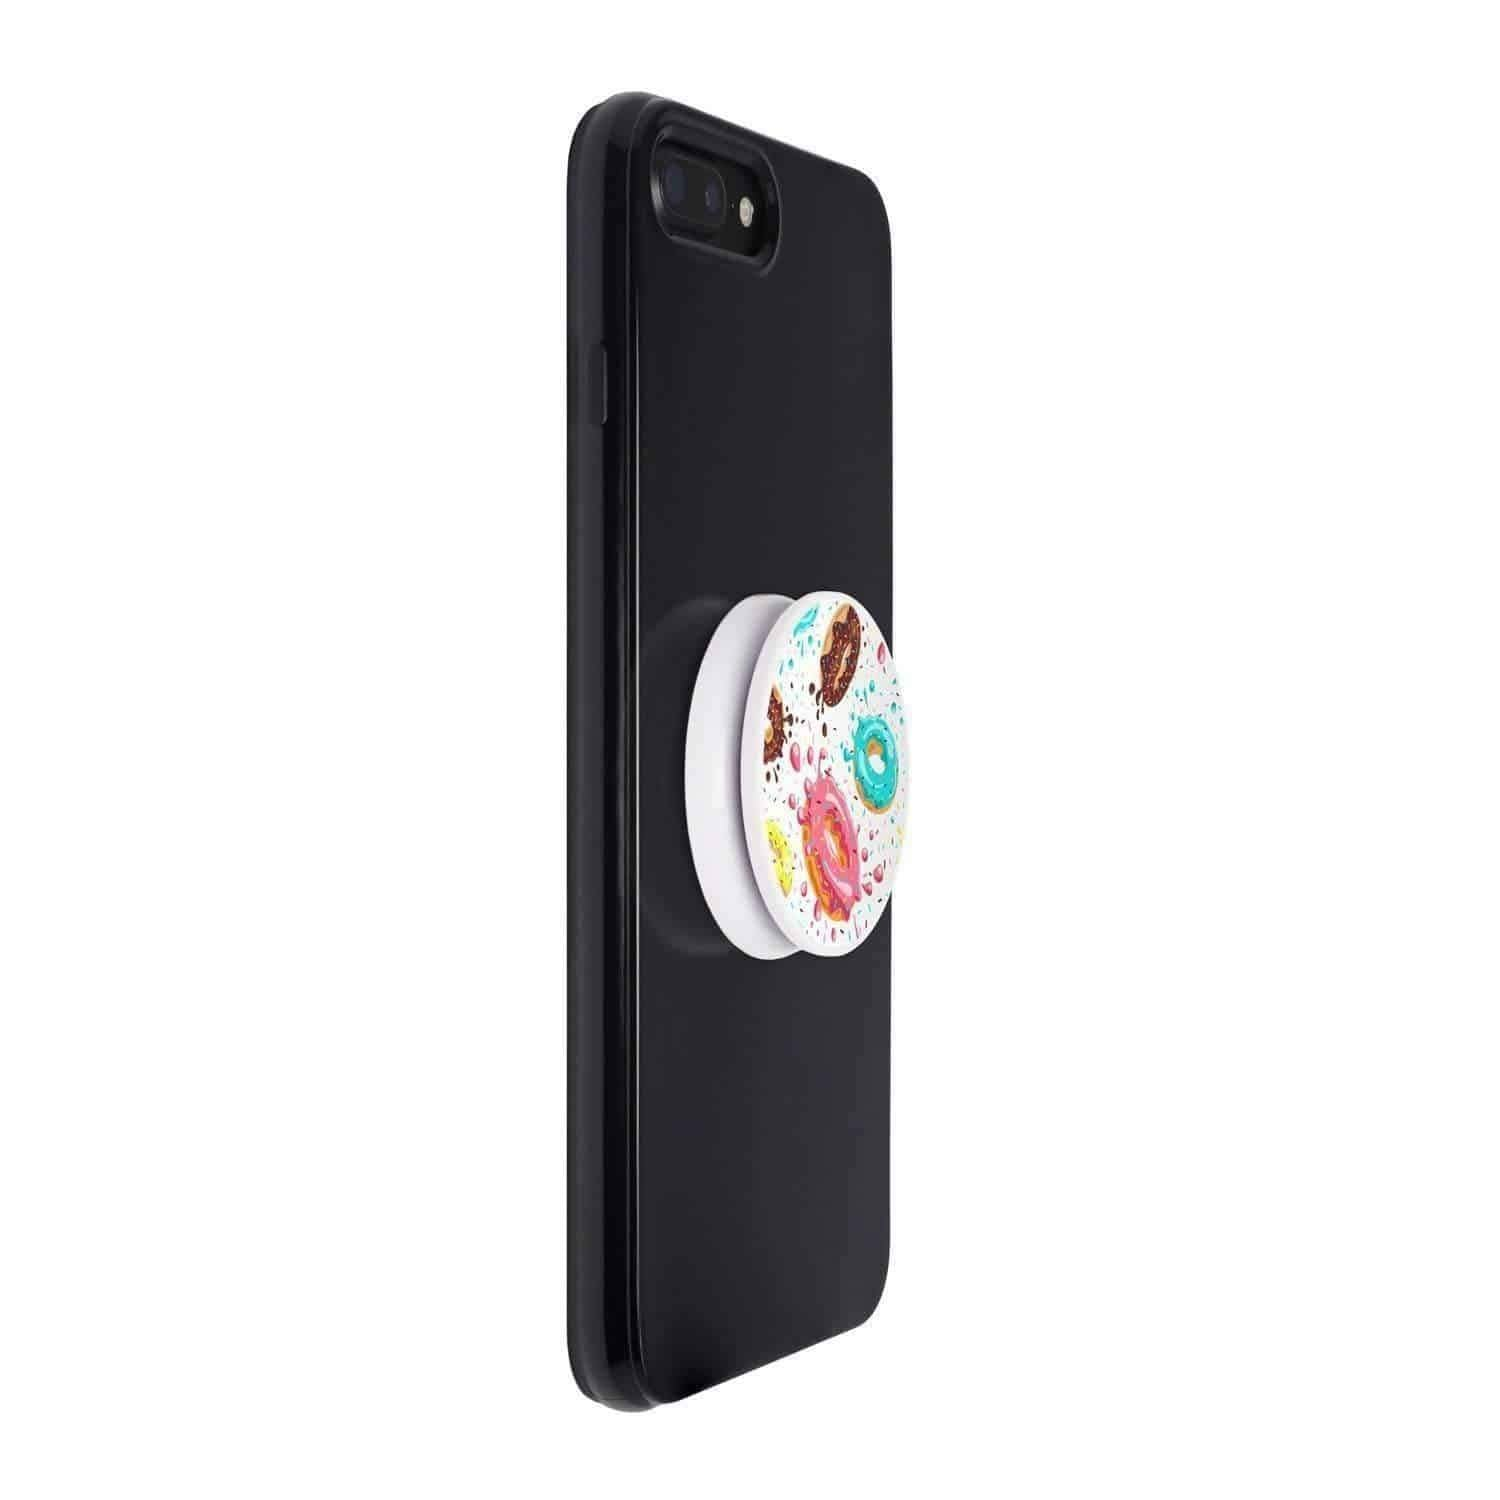 Coolgrips Magnetic Phone Grip and Stand Donuts - nerdygeektoys.com